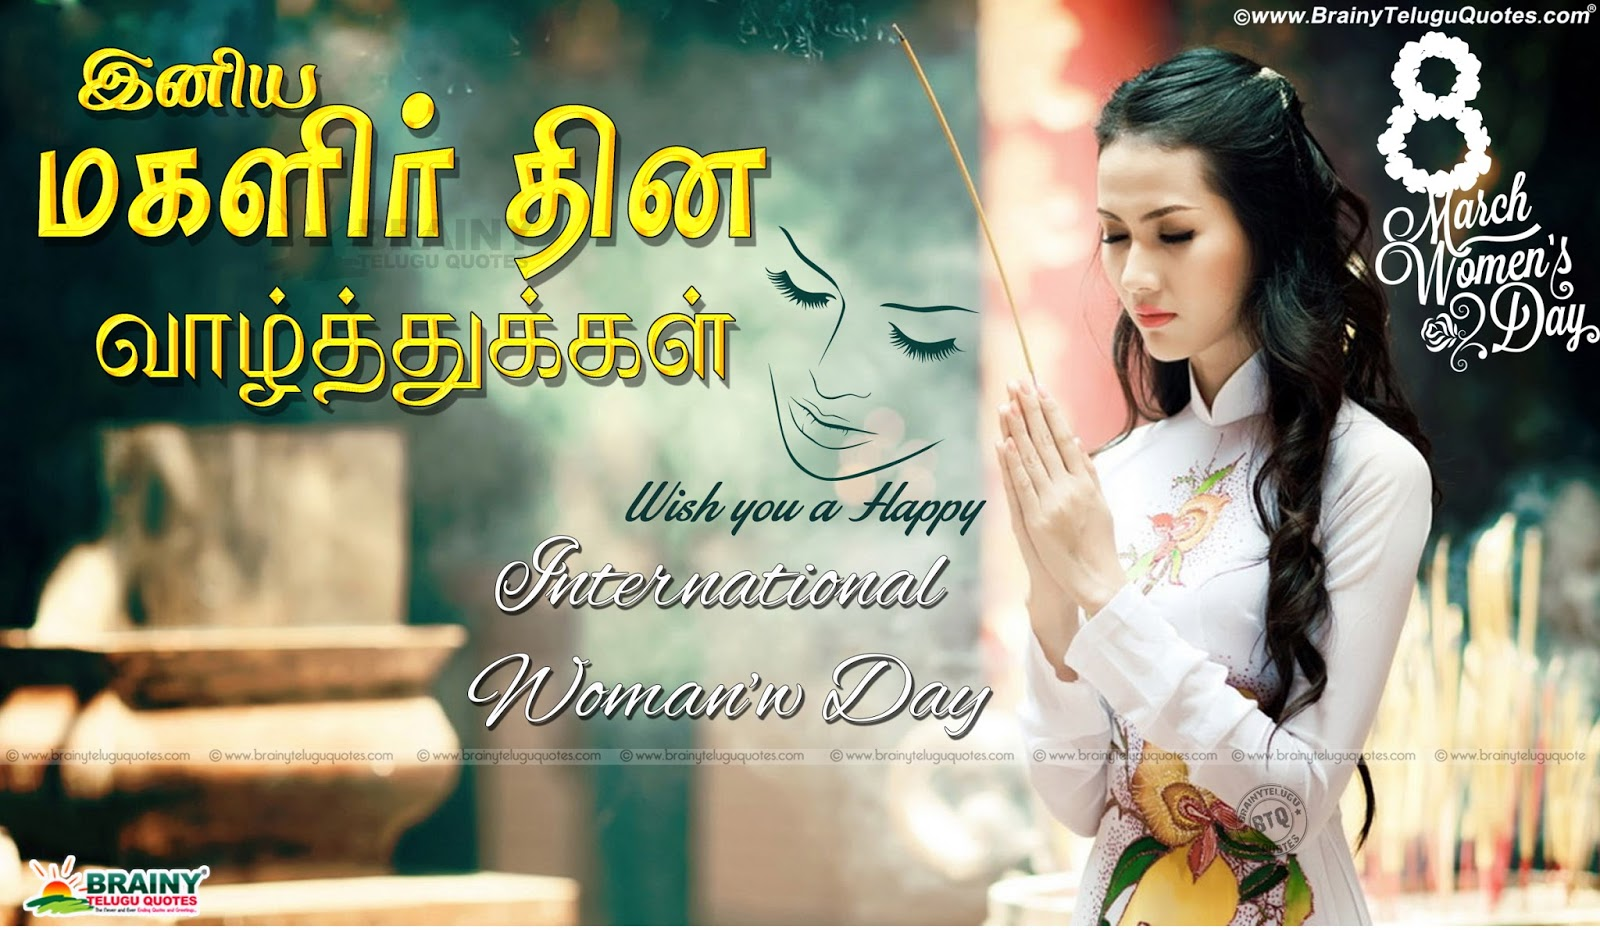 Latest Trending Womans Day Greetings Quotations In Tamil